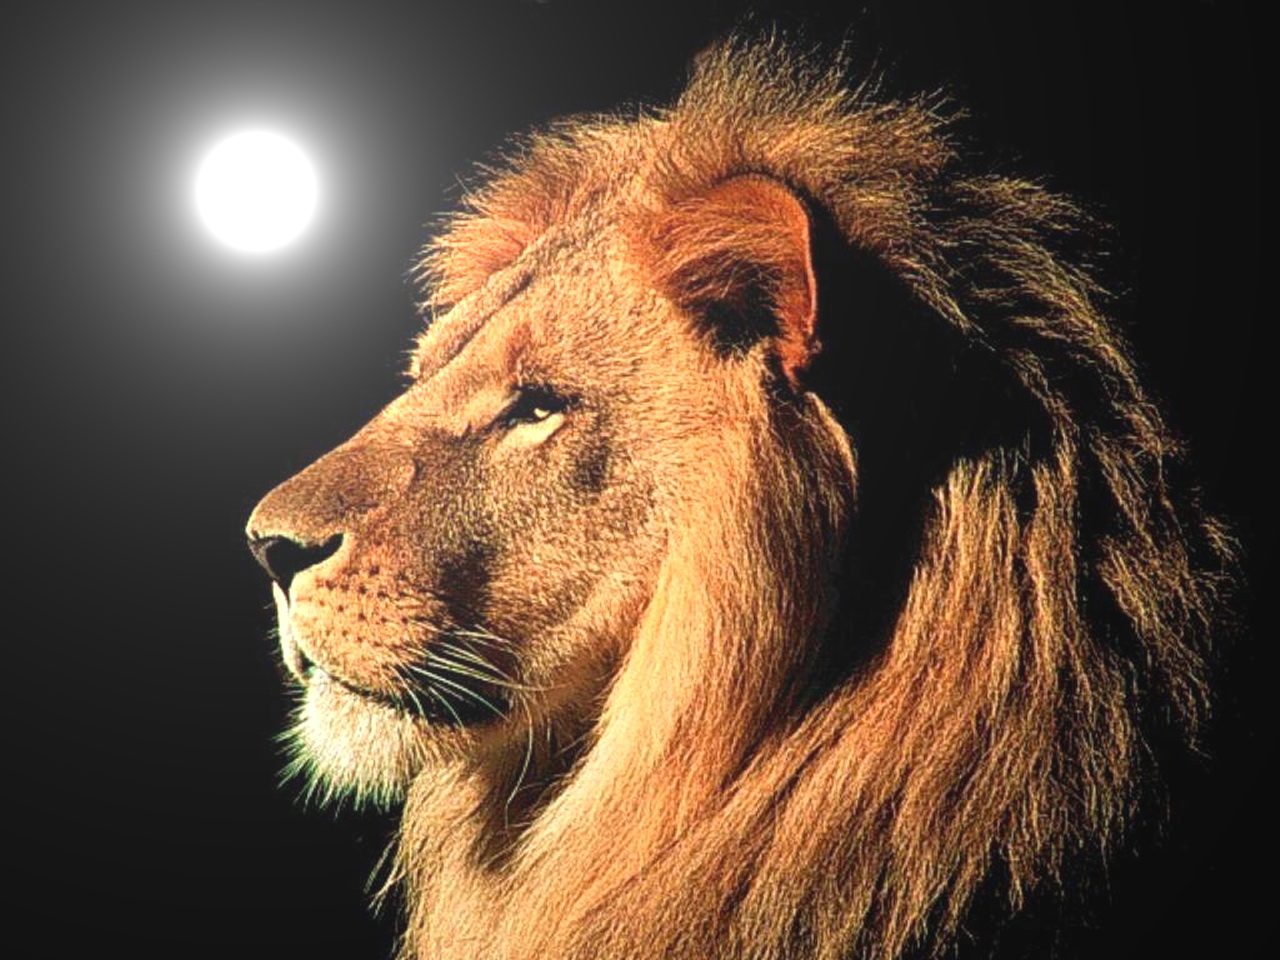 Good Wallpaper Night Lion - animals-2  2018-323839.jpg